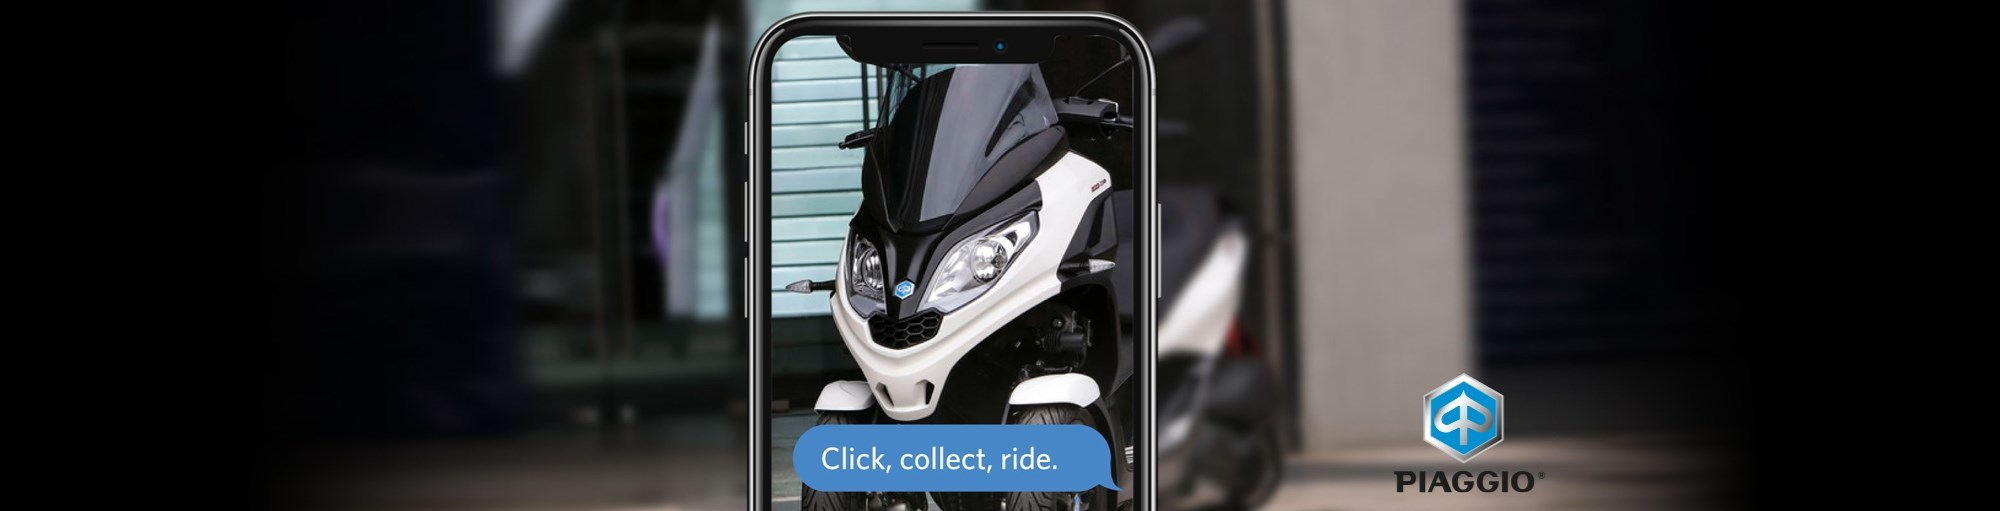 Piaggio Click and Collect